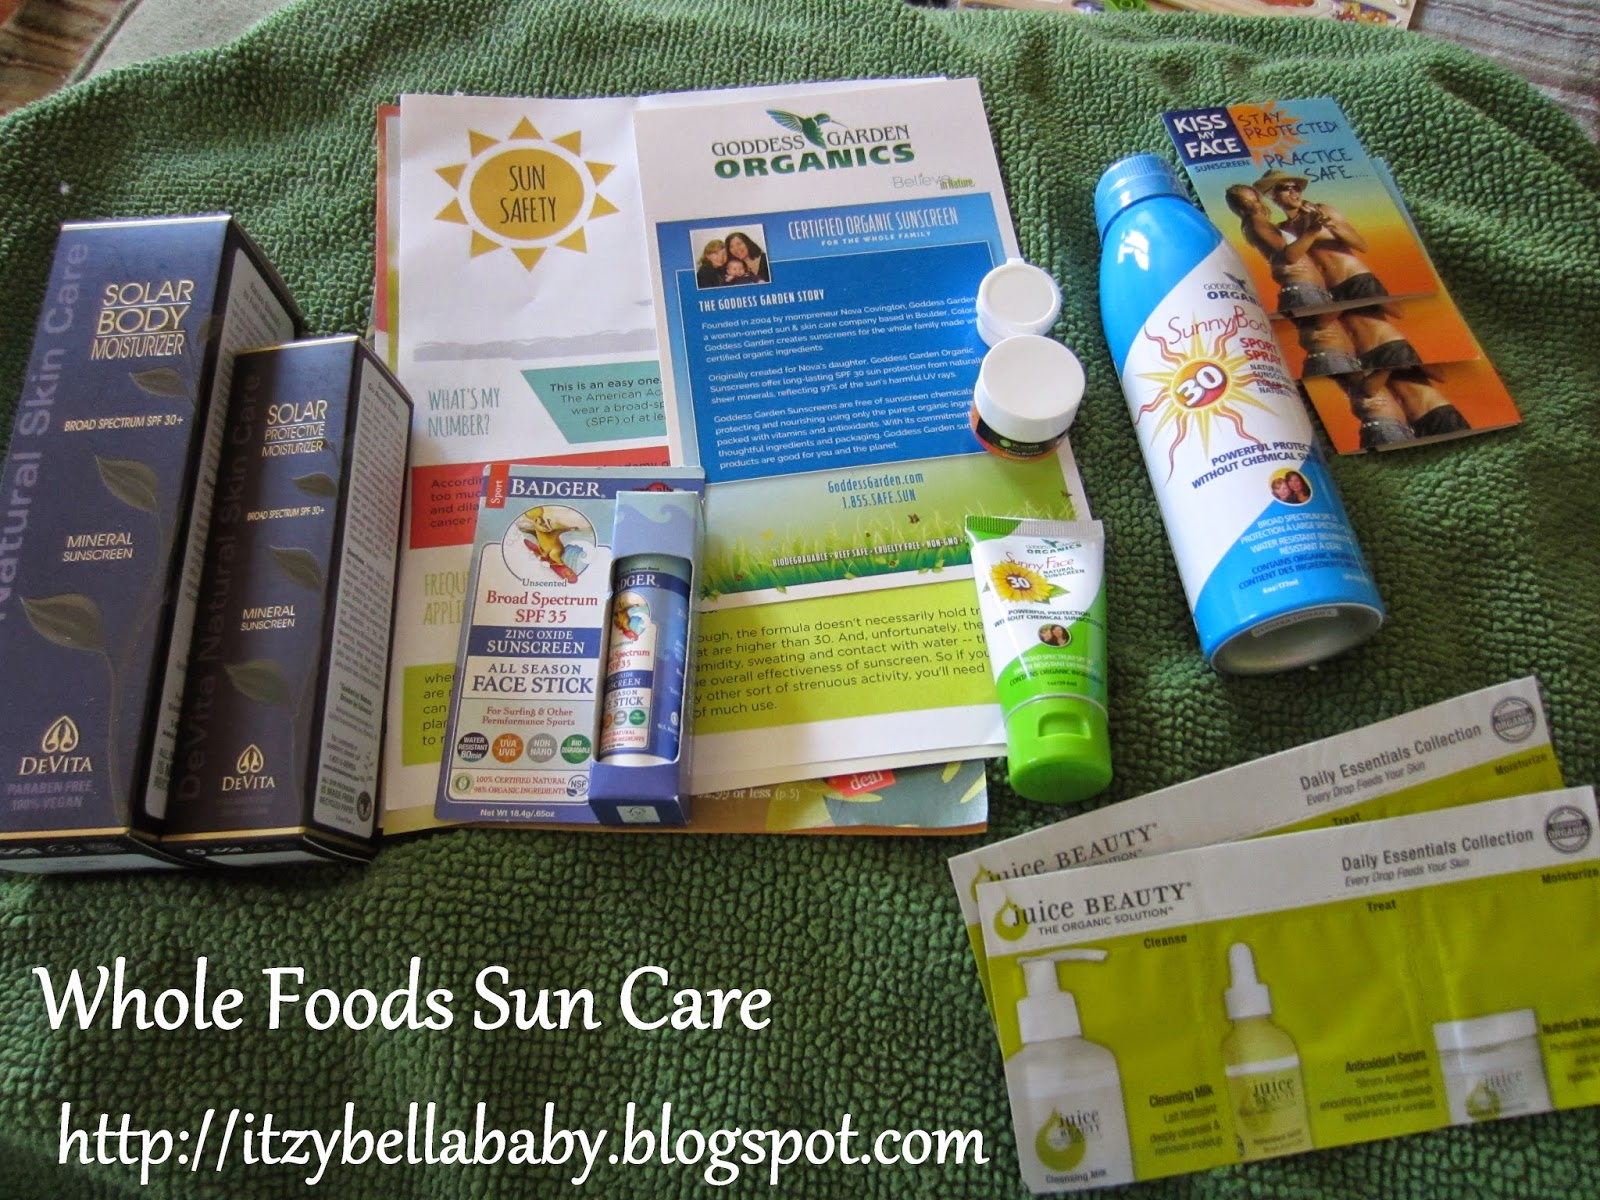 Whole Foods Sun Care in the desert